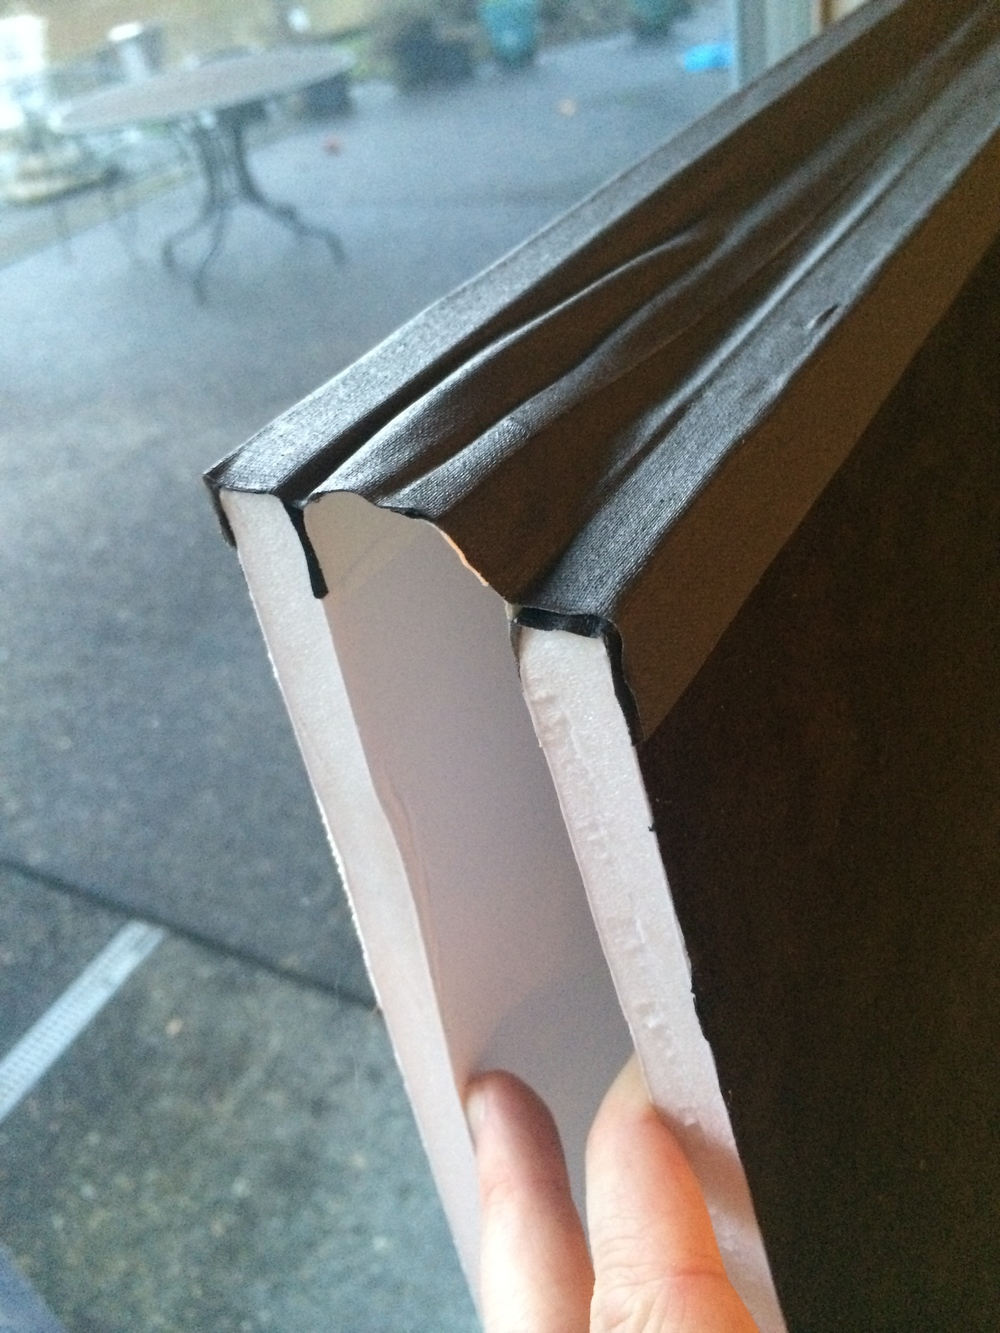 This is what it looks like after. My tape was wide enough to cover the hinge in just two pieces, but use three if necessary.